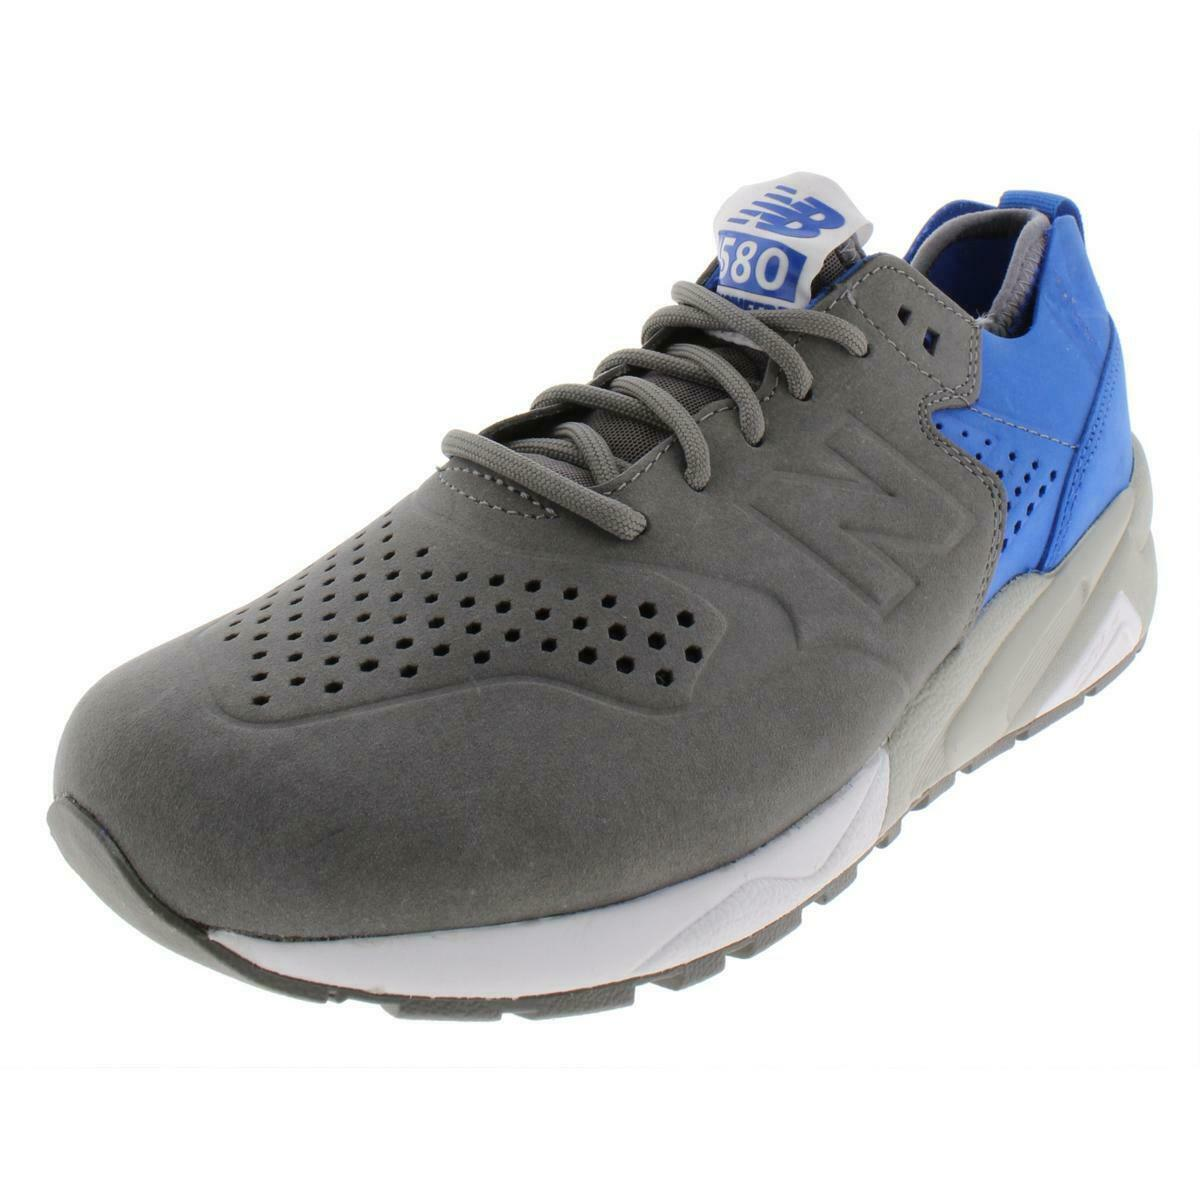 New Balance Mens 580 Colette Rev Lite Lifestyle Running shoes Athletic BHFO 3709